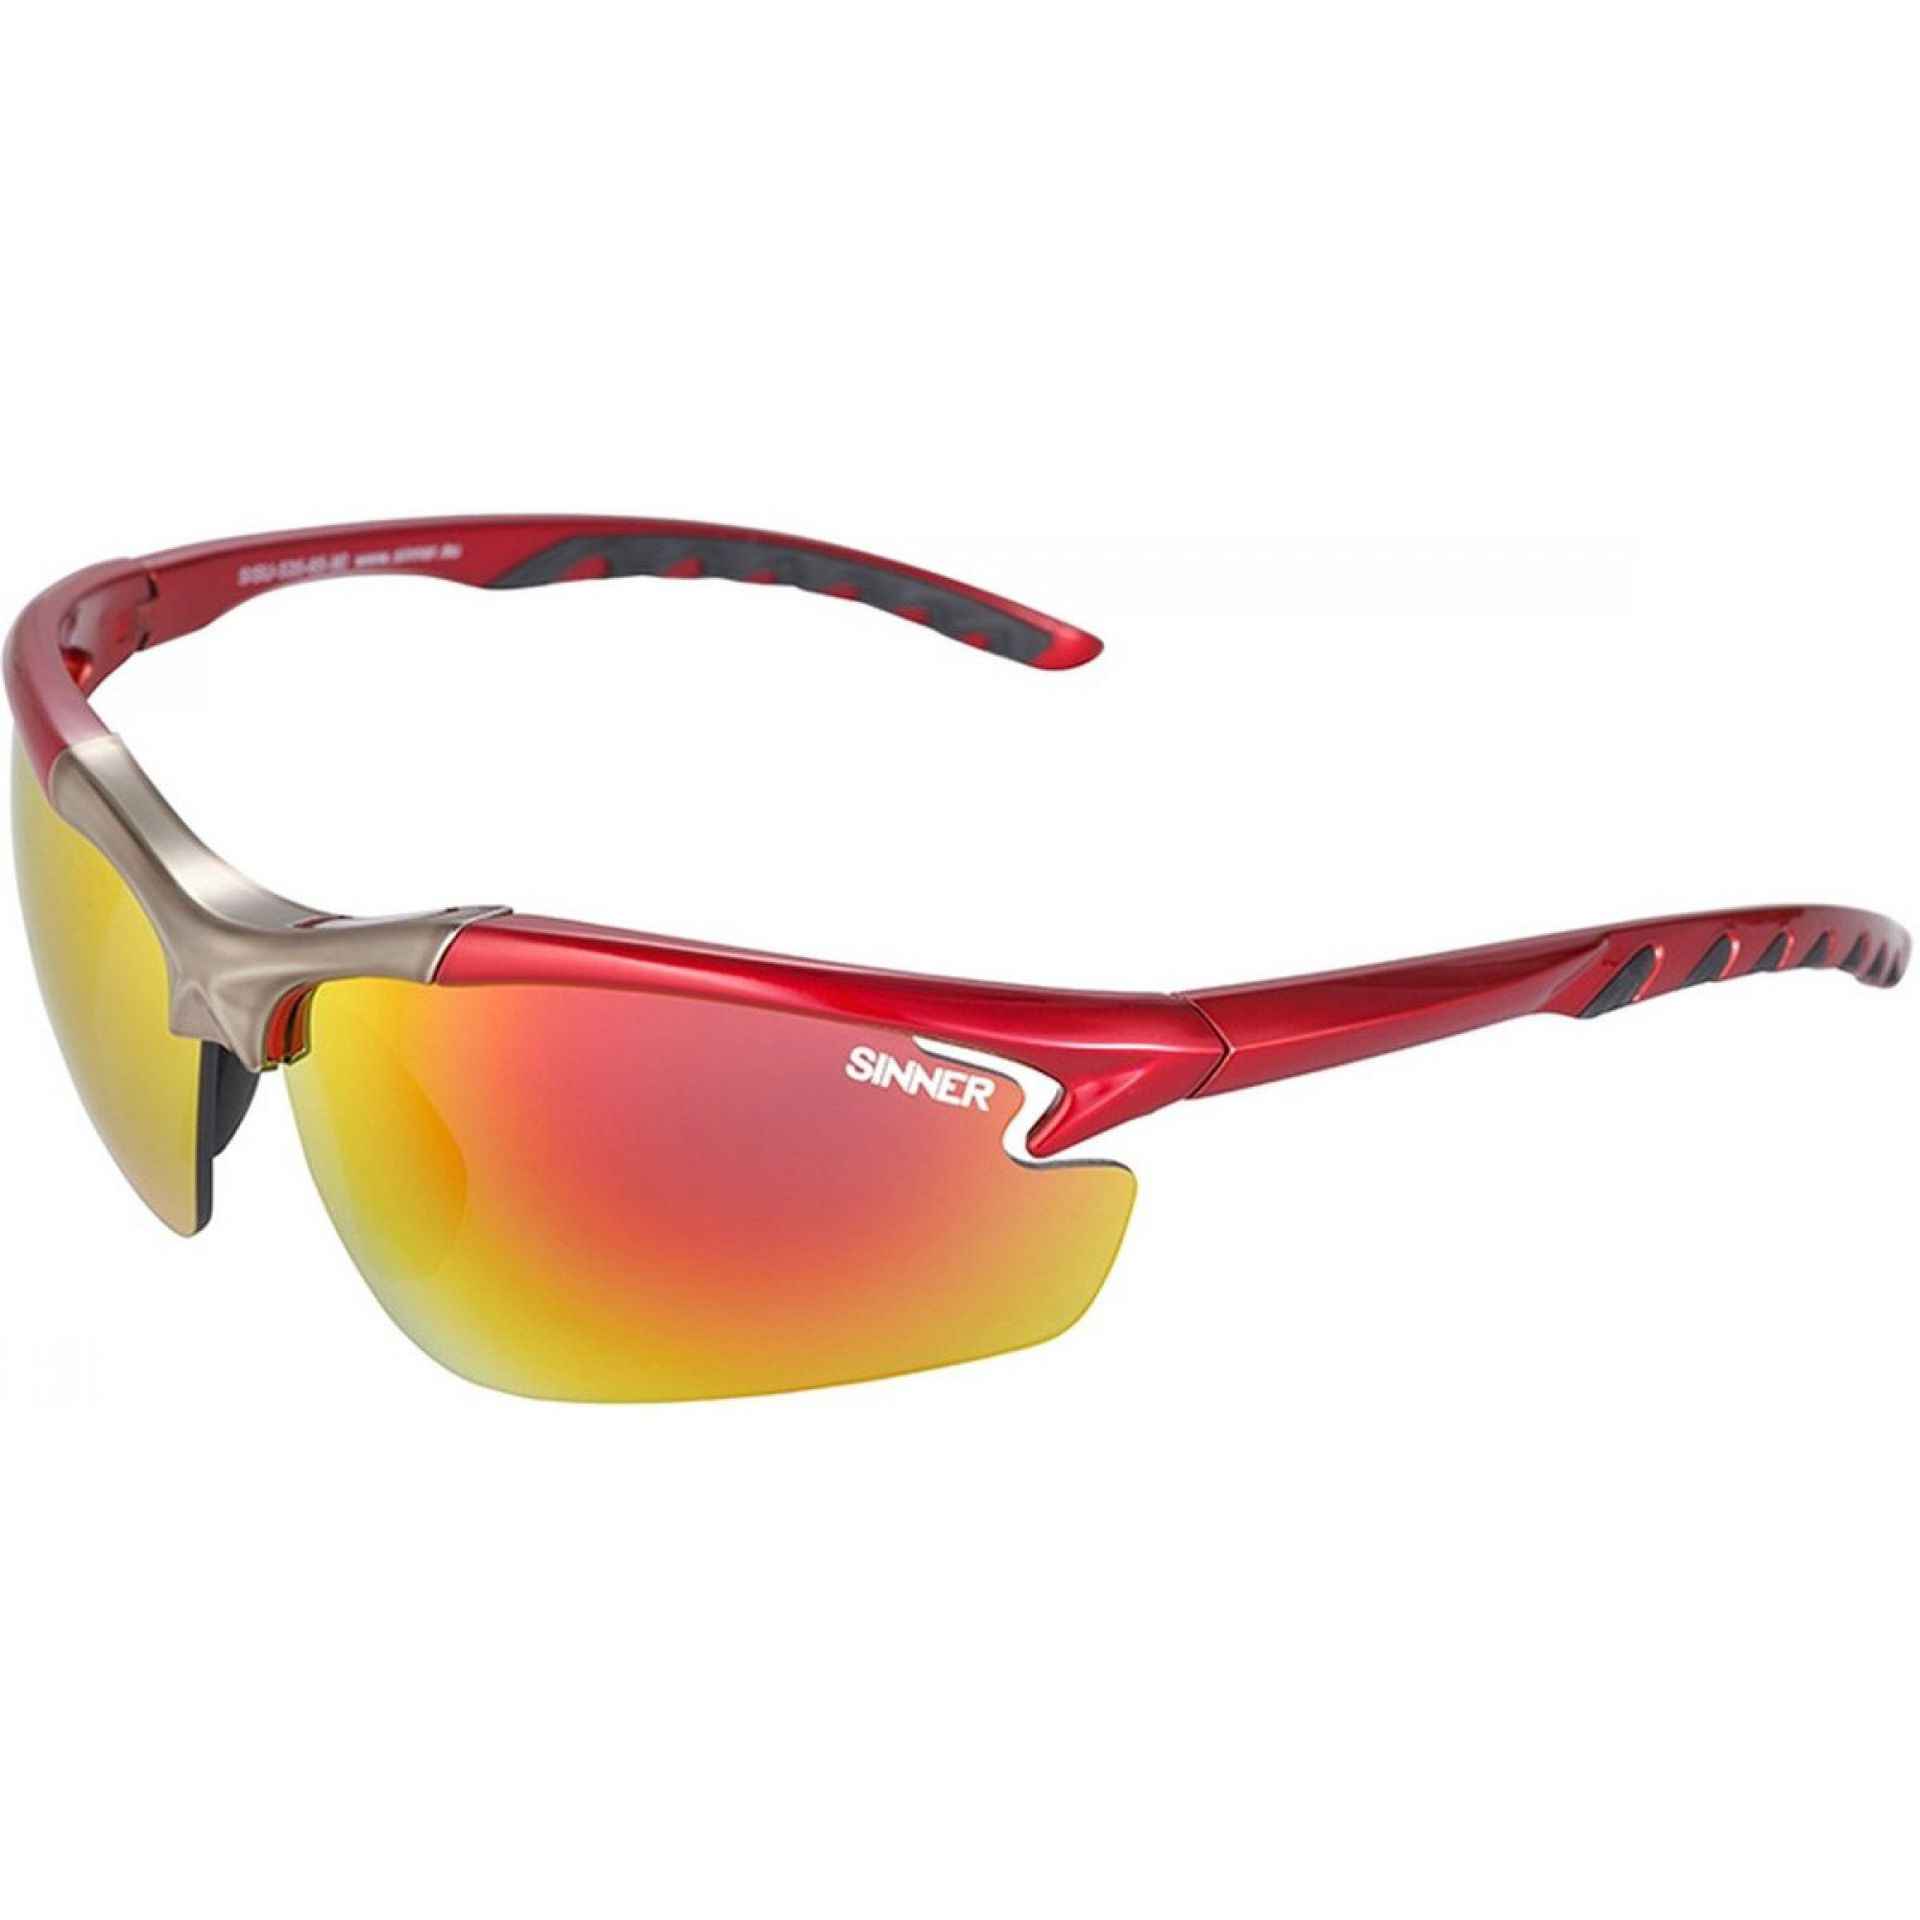 OKULARY SINNER FIREBUG RED